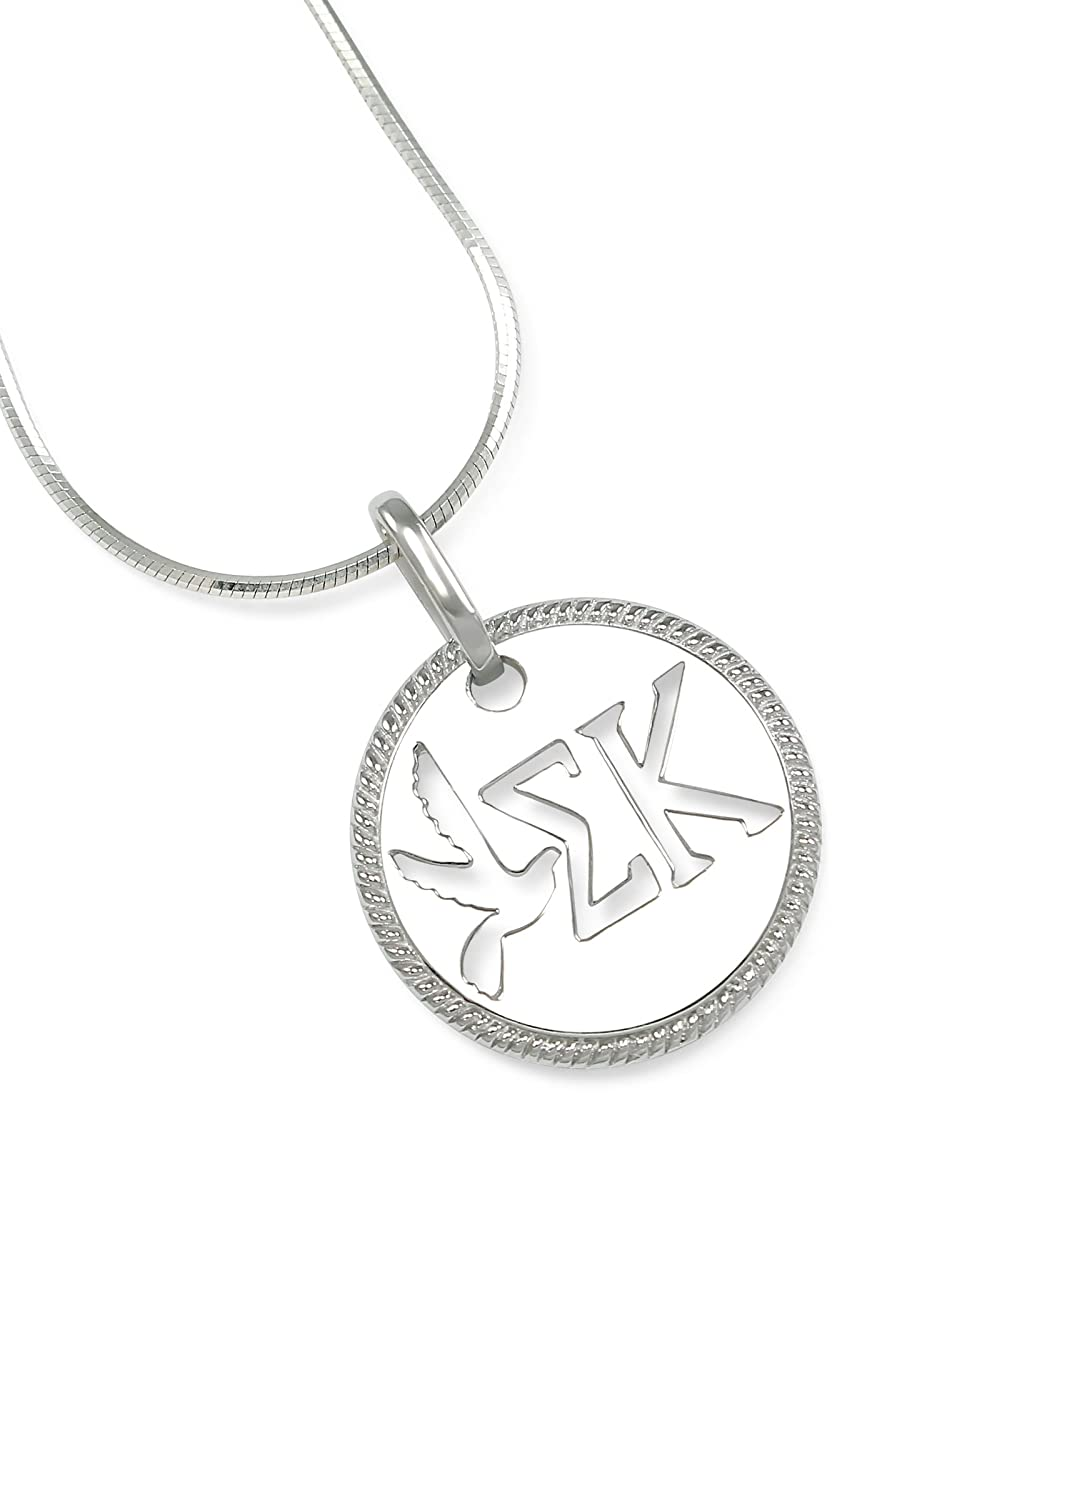 The Collegiate Standard Sigma Kappa Sterling Silver Circular Pendant with Cut-out Dove and Letters